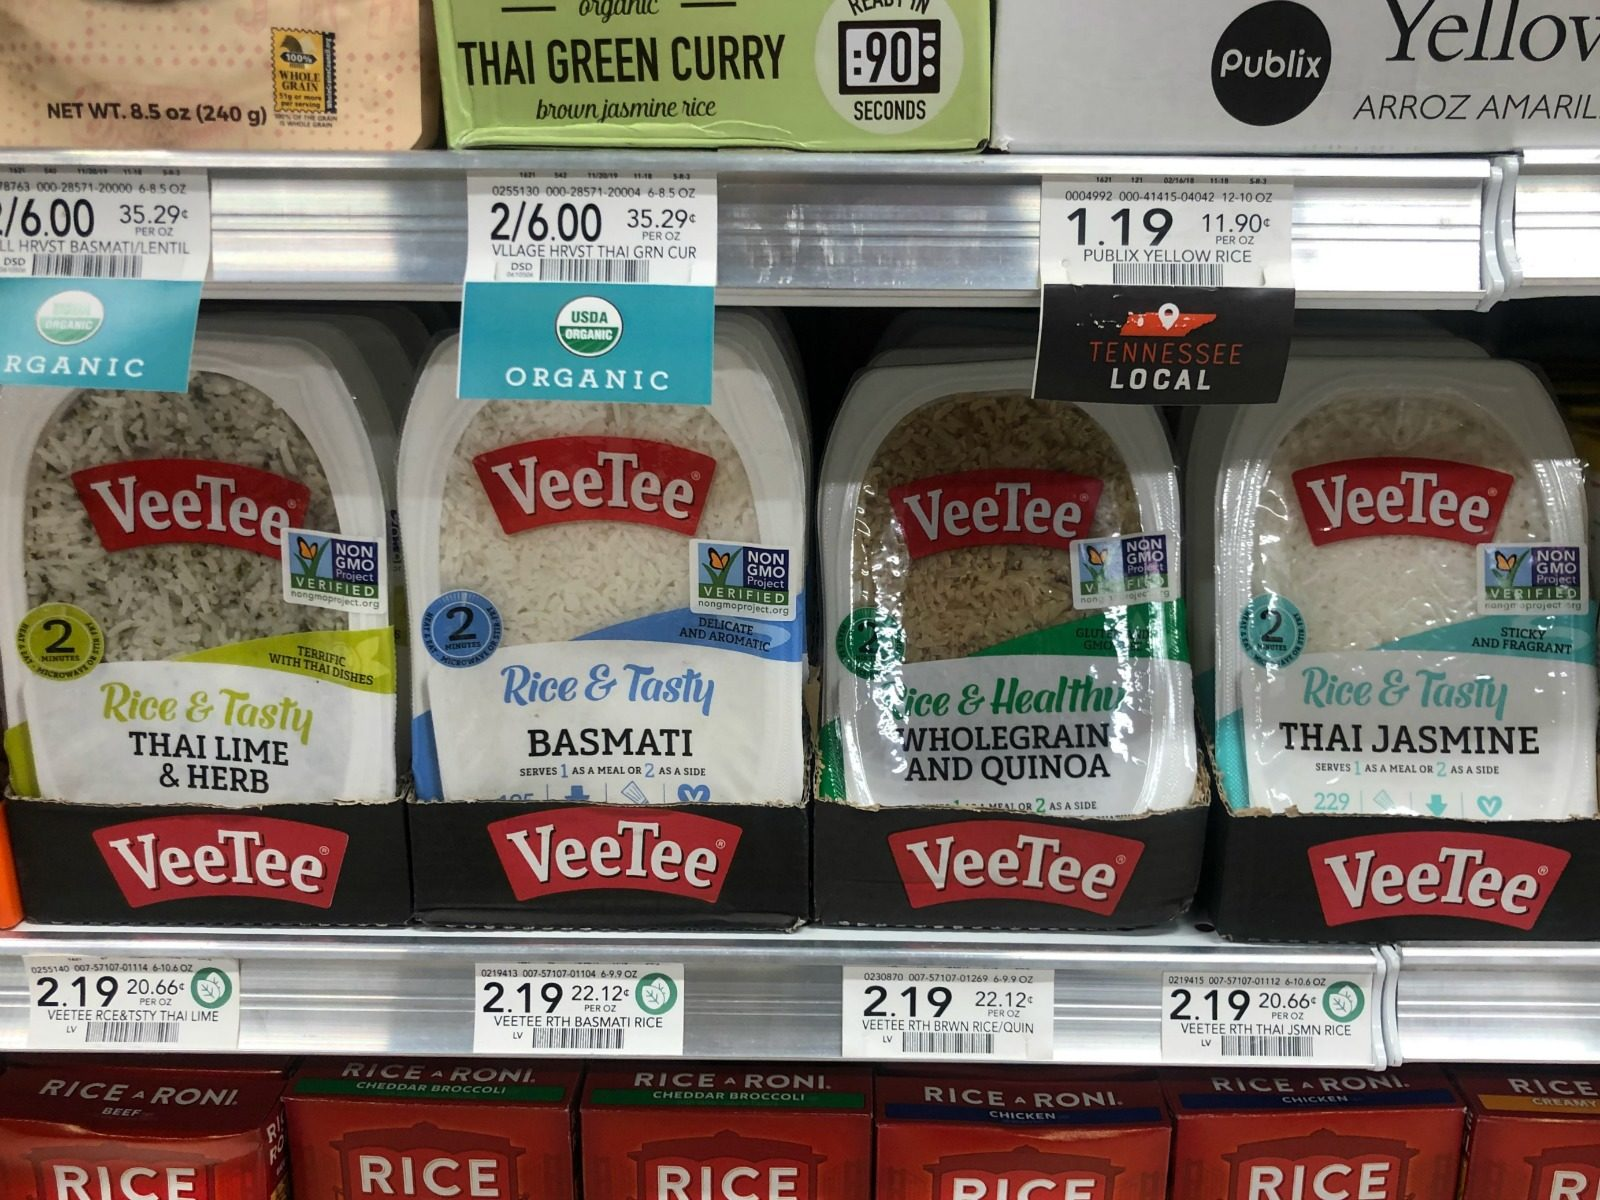 Veetee Rice At Publix - Stock Up For The Holidays! on I Heart Publix